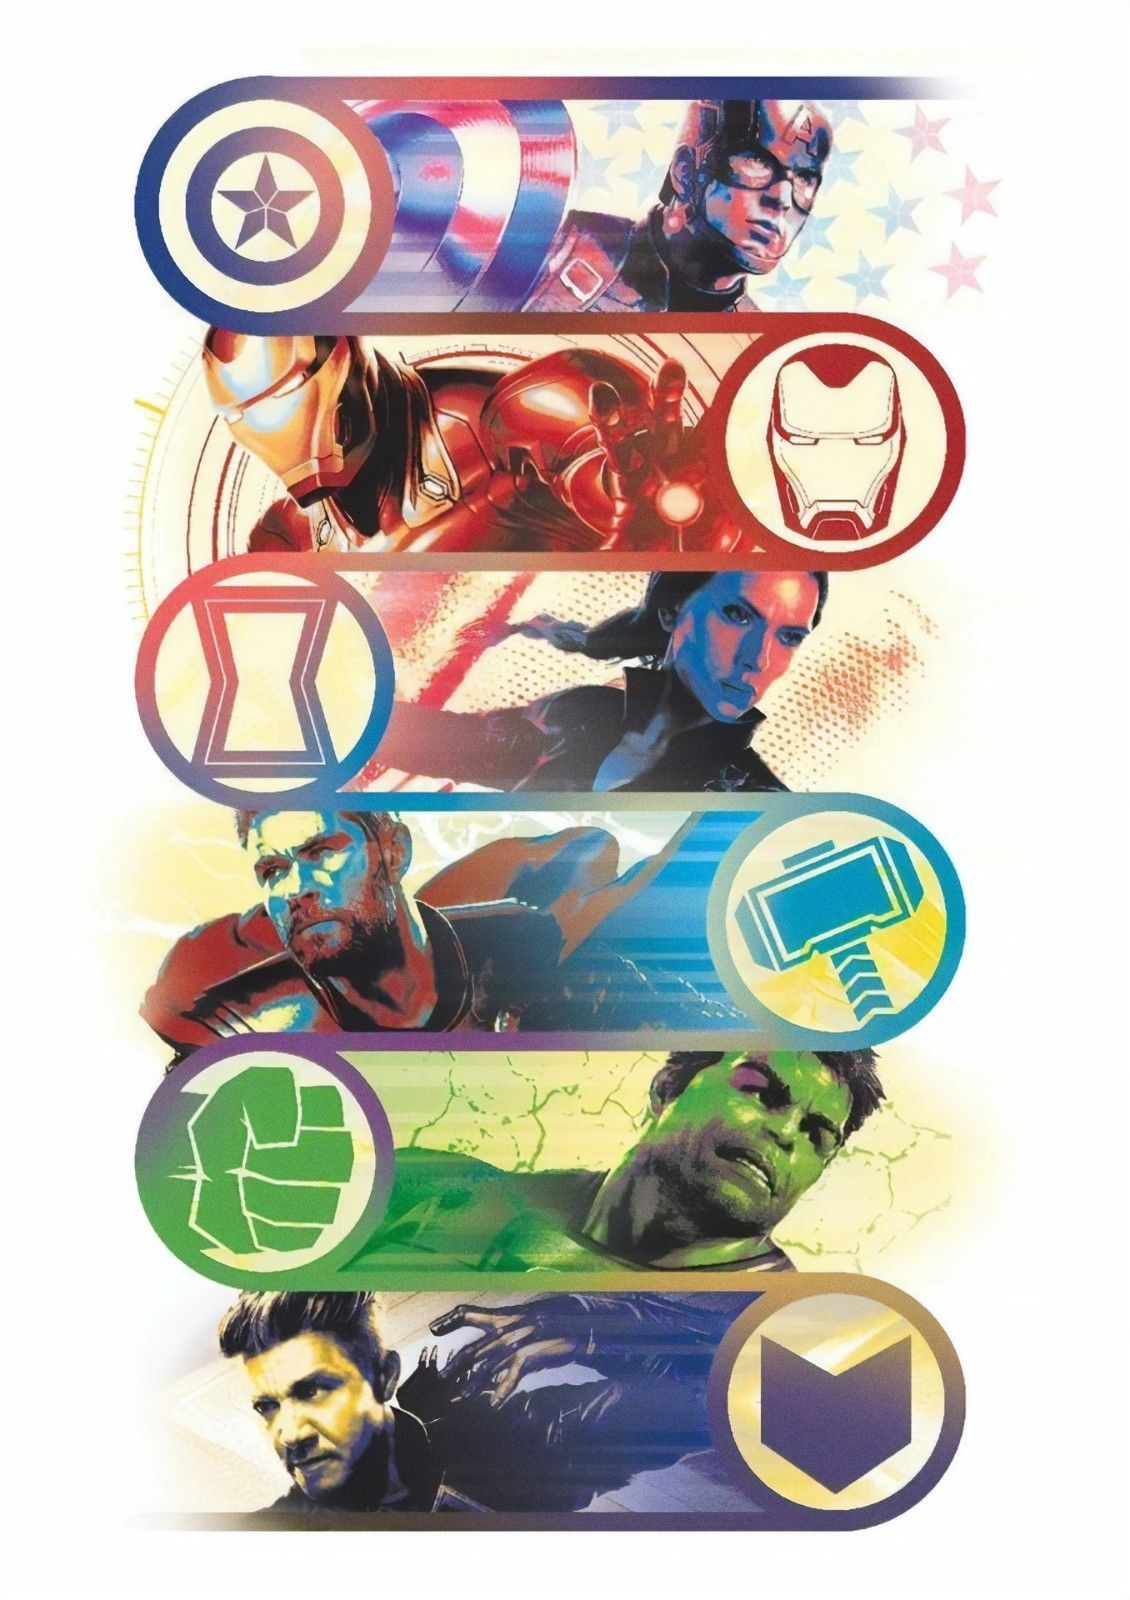 Avengers 4 end game movie poster 13x20 24x36 27x40